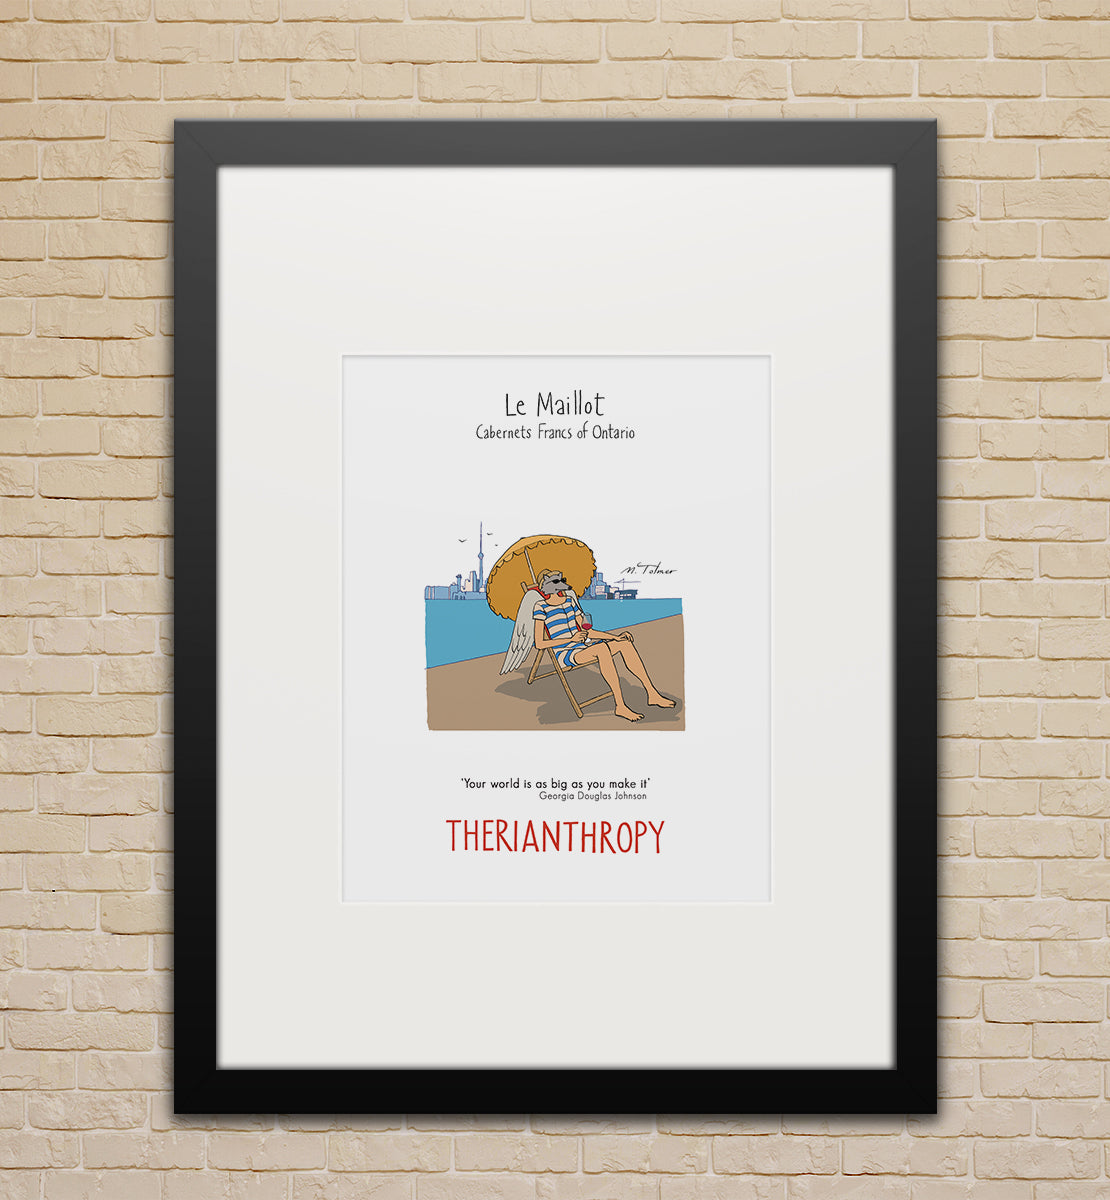 Framed poster (small): Le Maillot